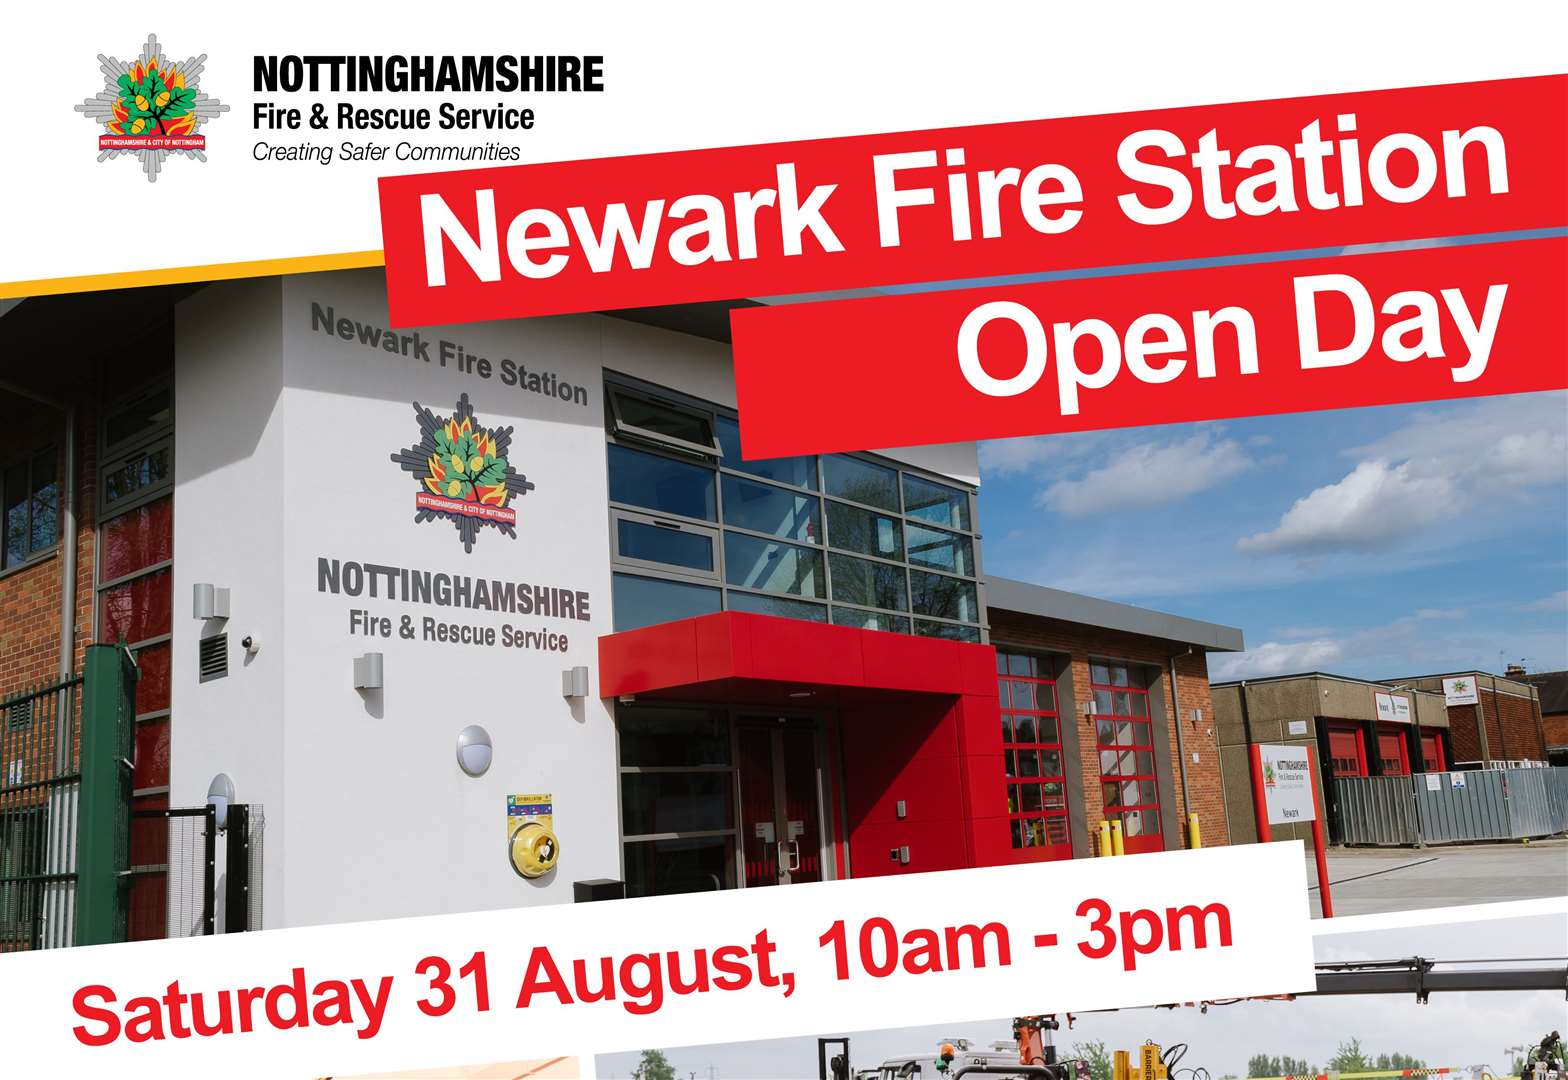 Newark Fire Station open day being held this weekend